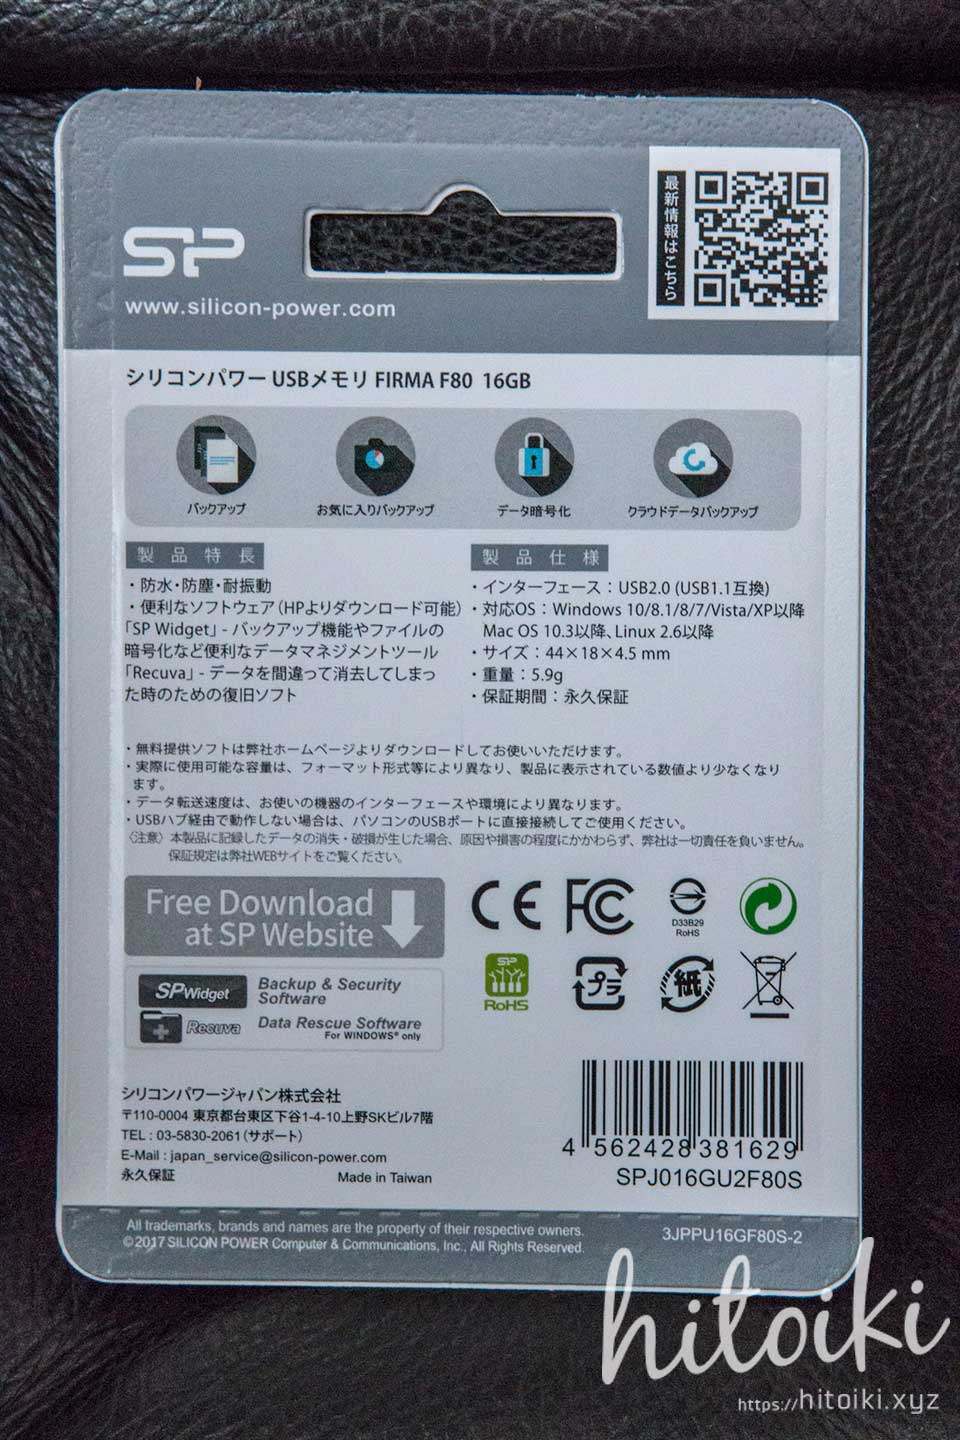 Silicon Power シリコンパワー 人気 おしゃれ 安心 危険 注意 sp_usb-flash-rive_firmaf80_silicon-power_img_6170